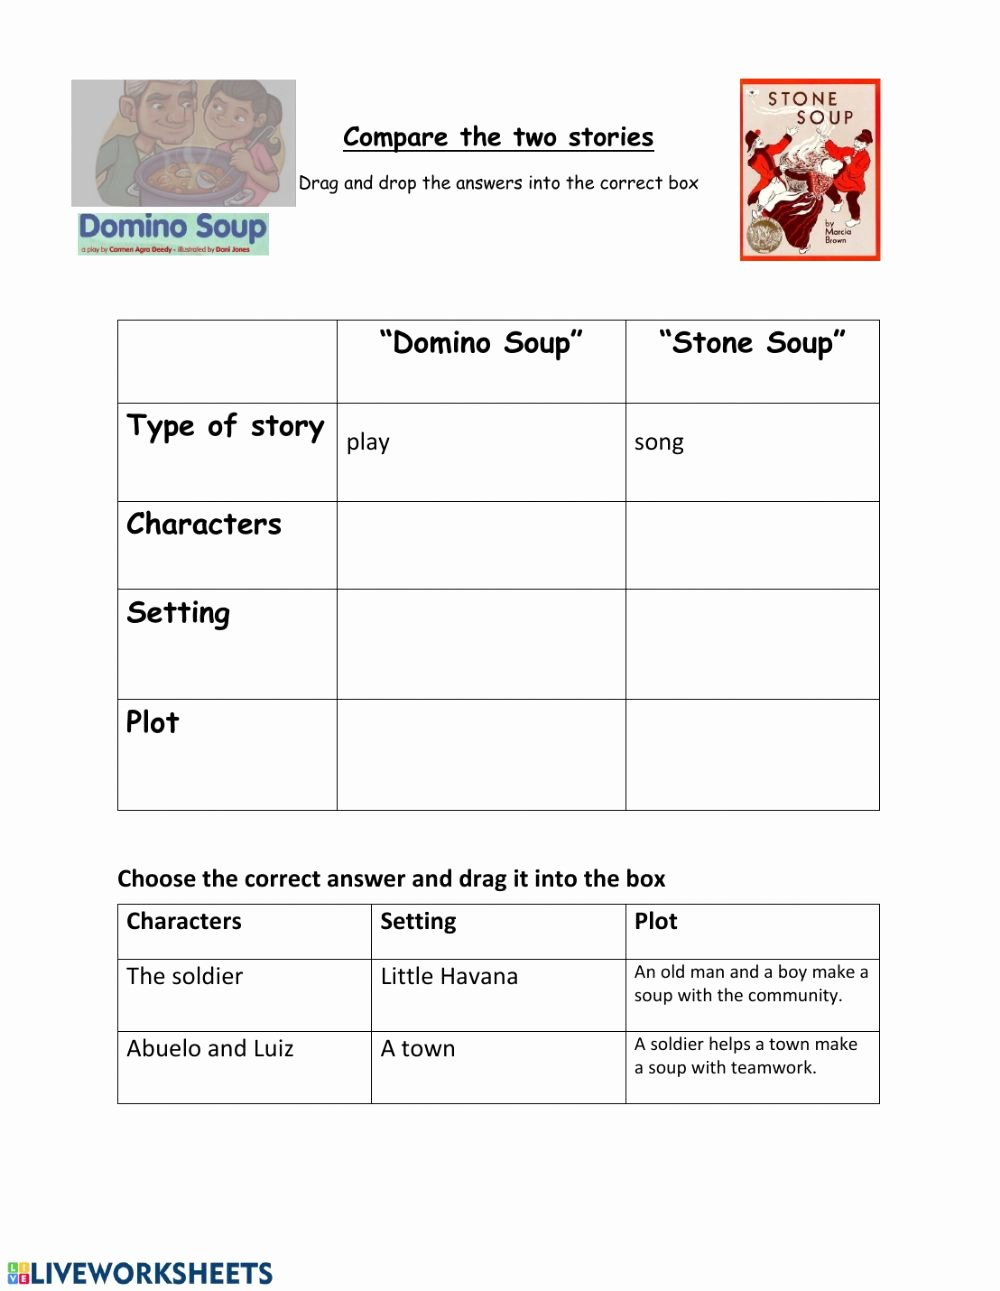 Character Setting and Plot Worksheets Inspirational Pare Stone soup and Domino soup Interactive Worksheet